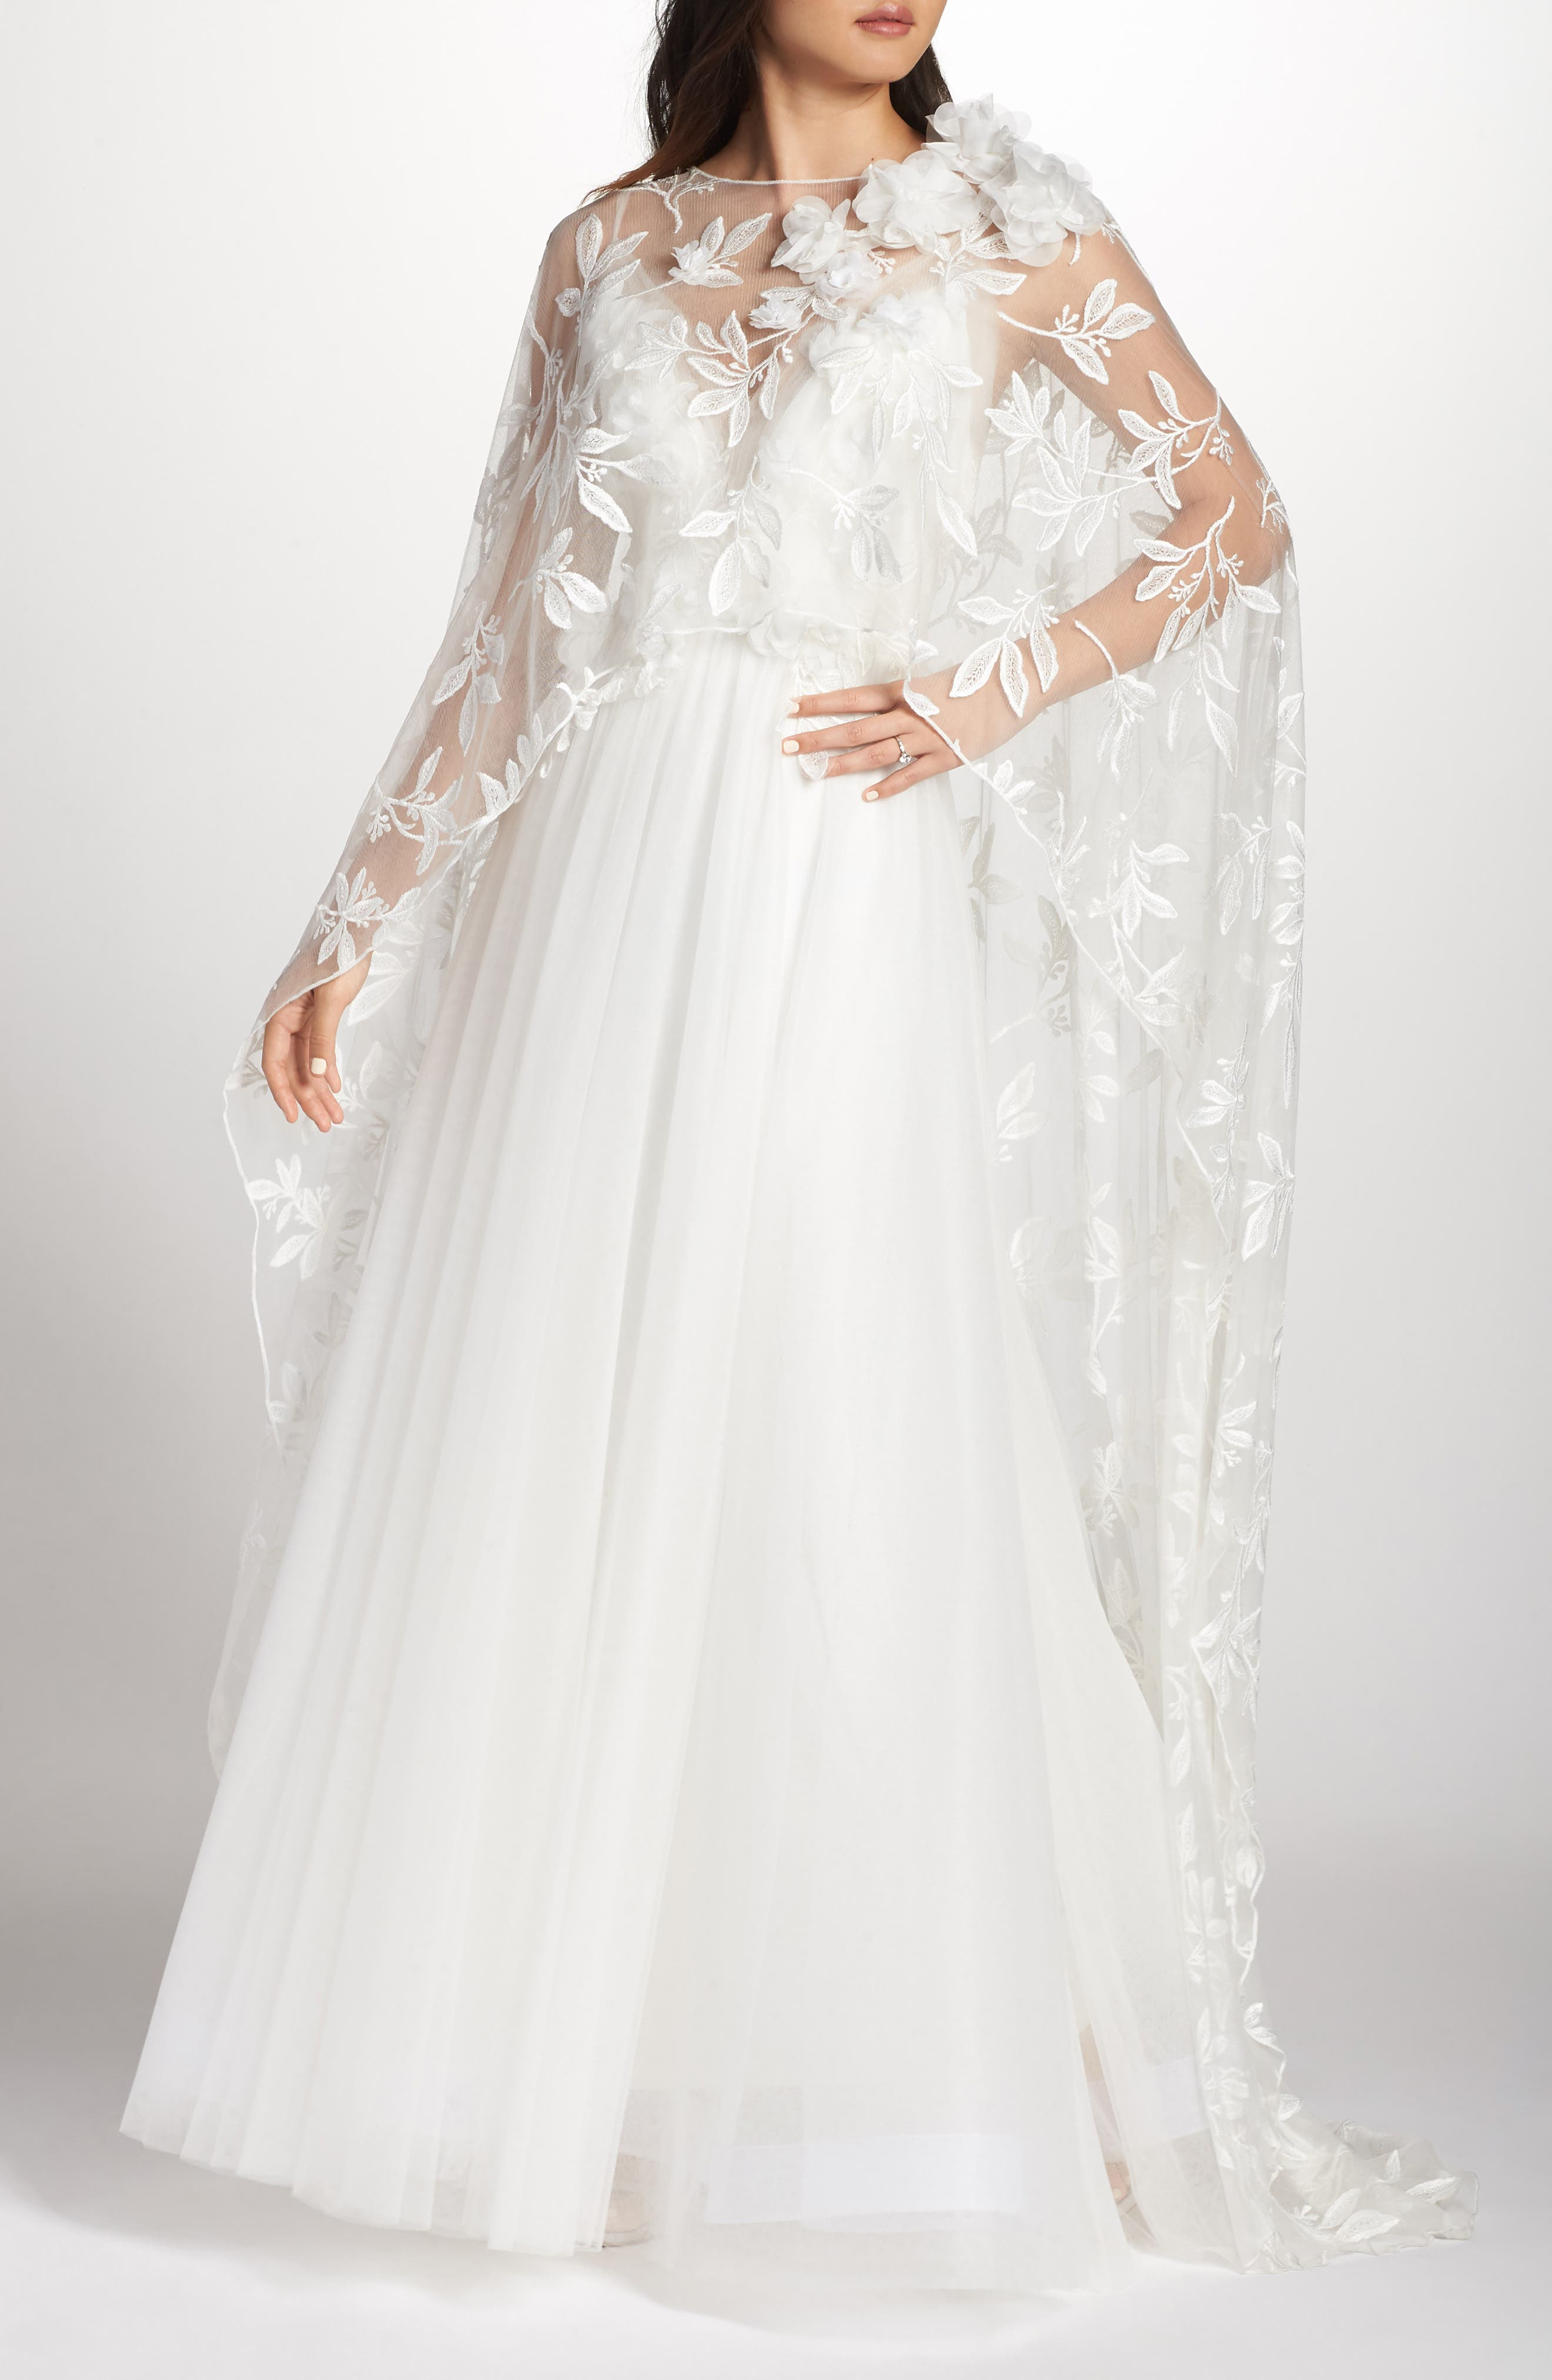 Vintage Inspired Wedding Dress | Vintage Style Wedding Dresses Womens Tadashi Shoji Floral Embroidered Cape $578.00 AT vintagedancer.com